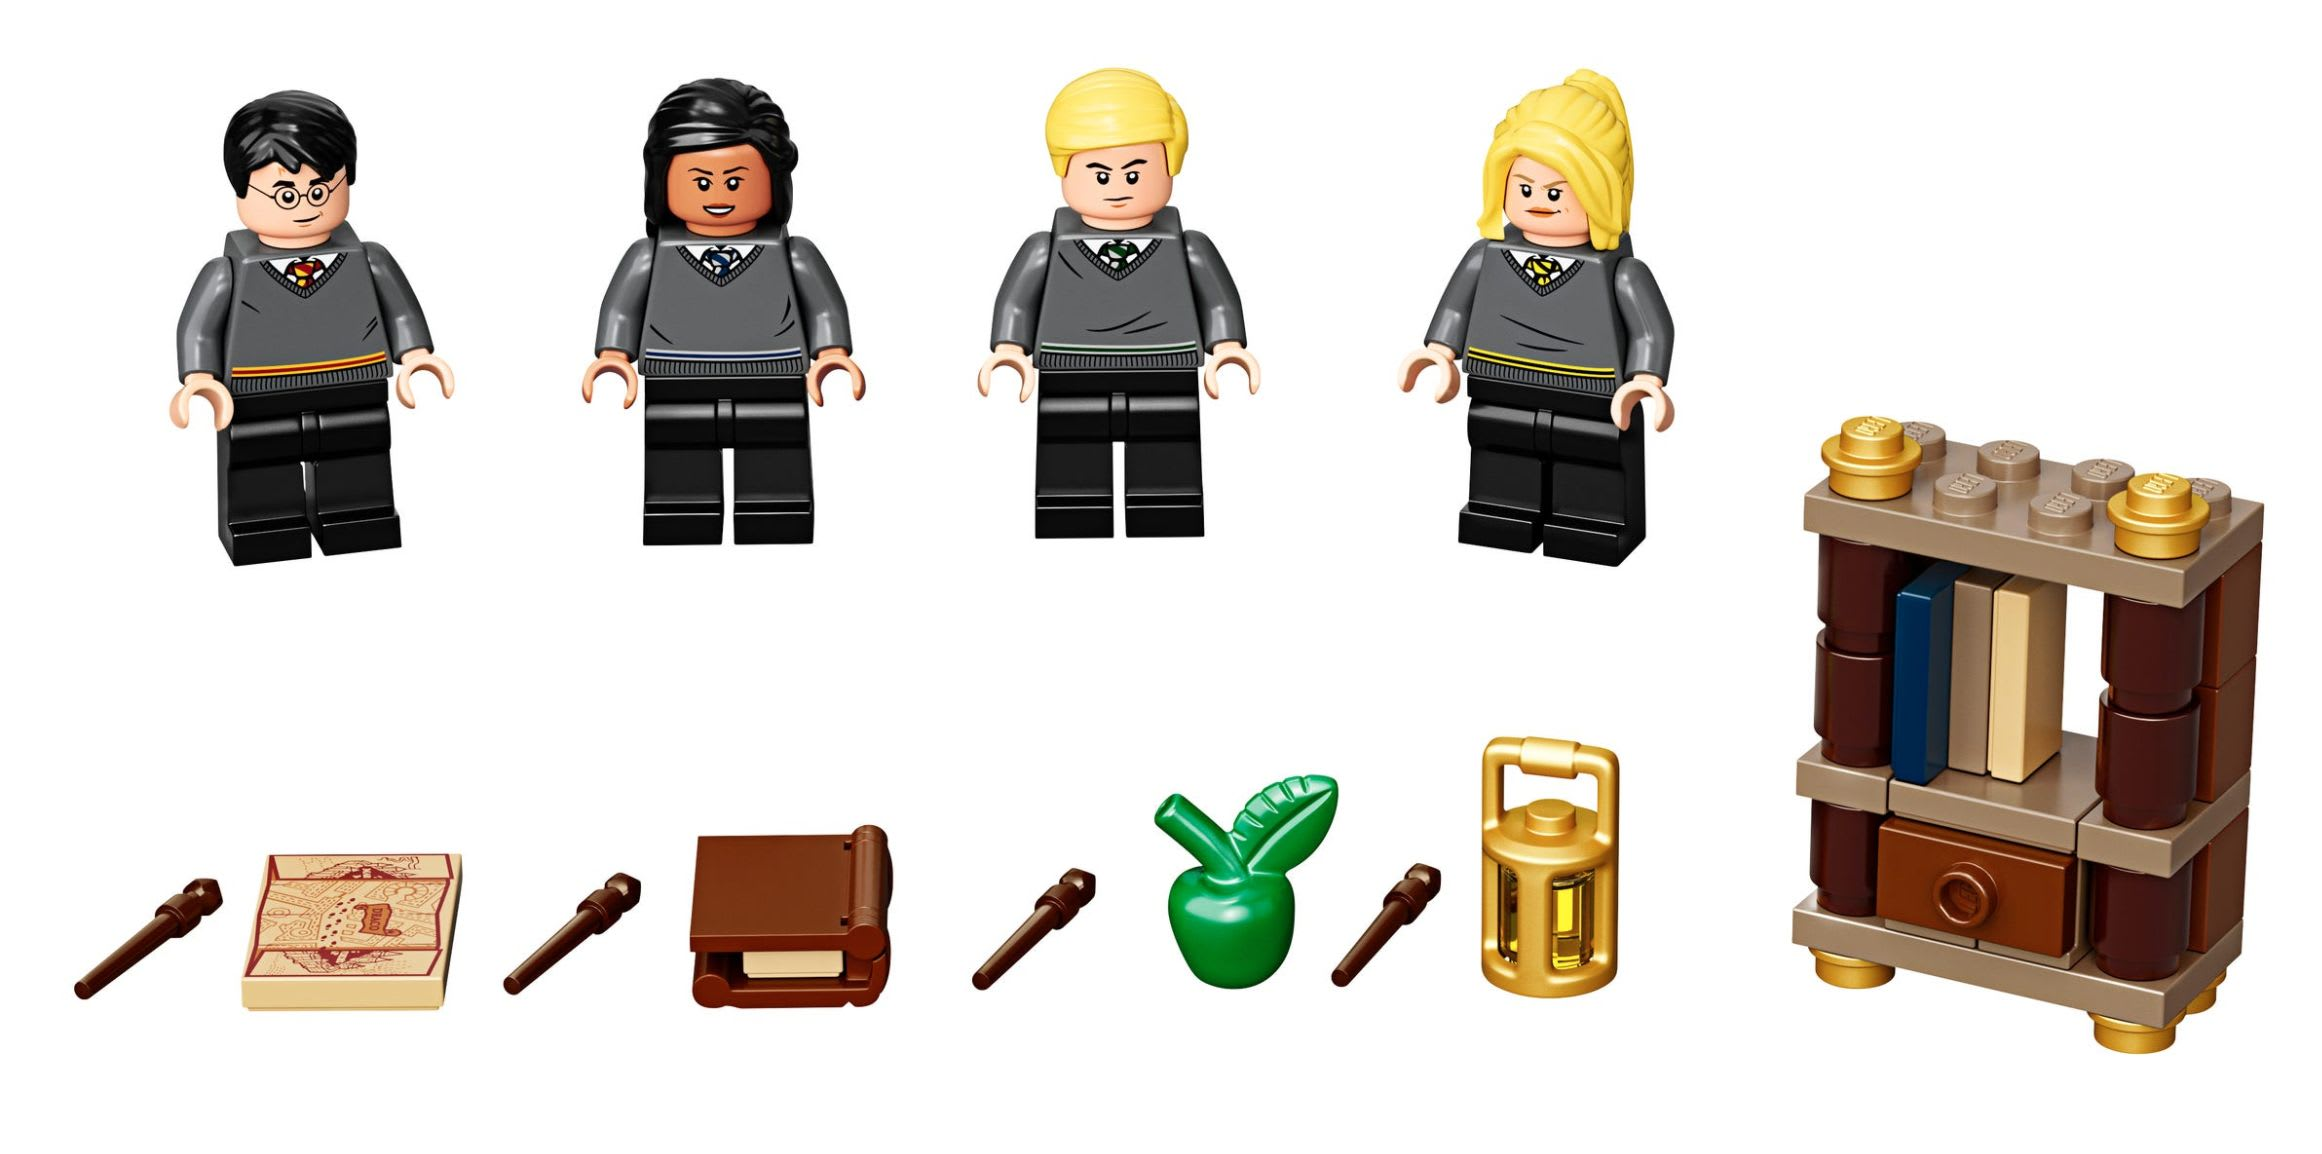 Discover the LEGO Harry Potter Student Accessory set available at LEGO.